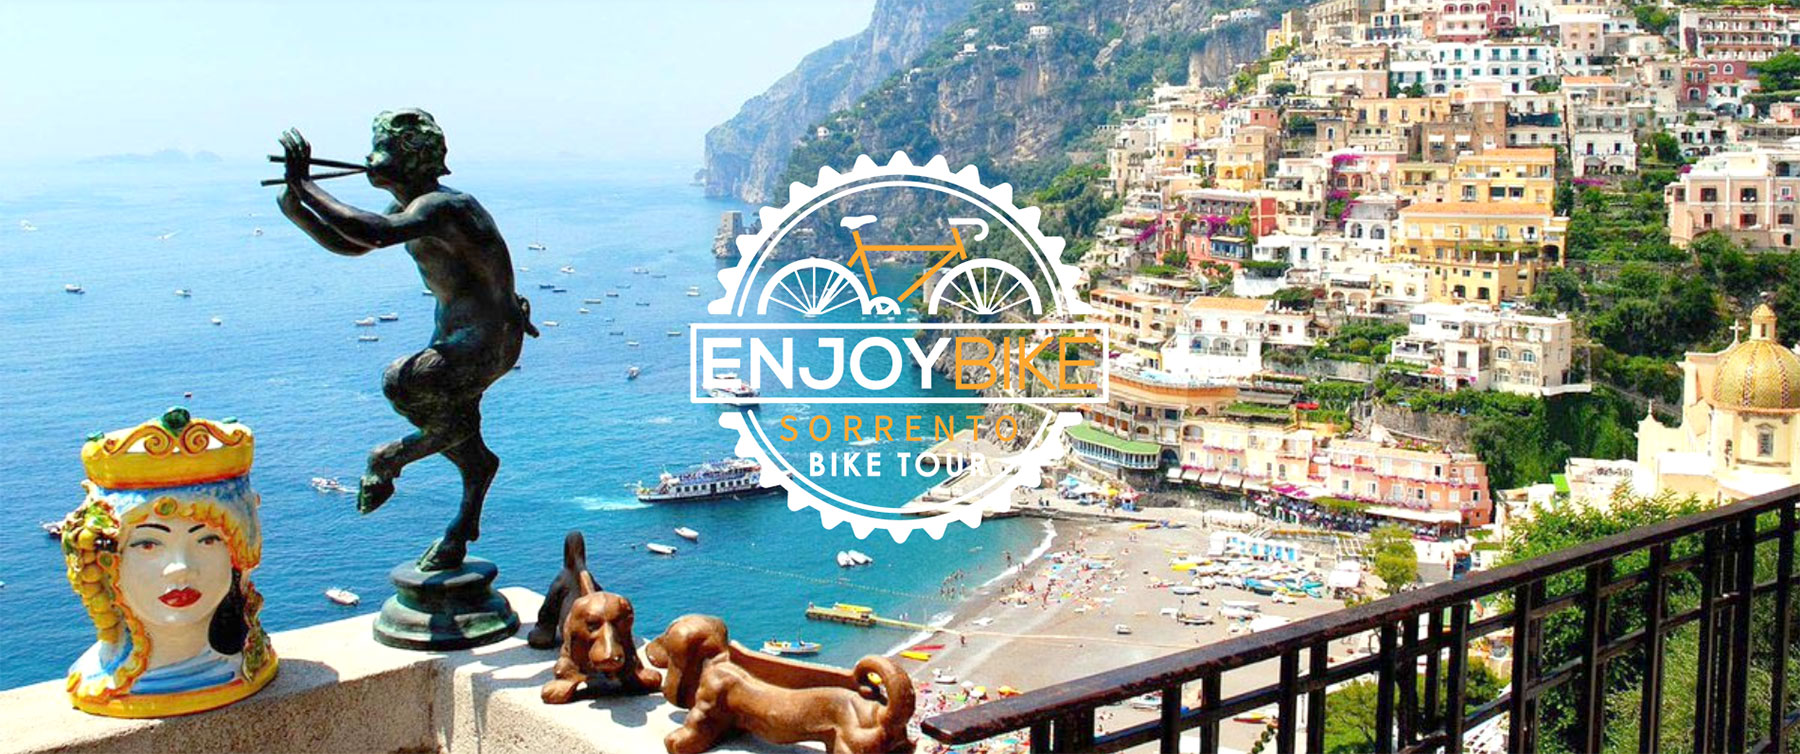 Enjoy Bike Sorrento - Bike tour in Penisola Sorrentina e Costiera amalfitana